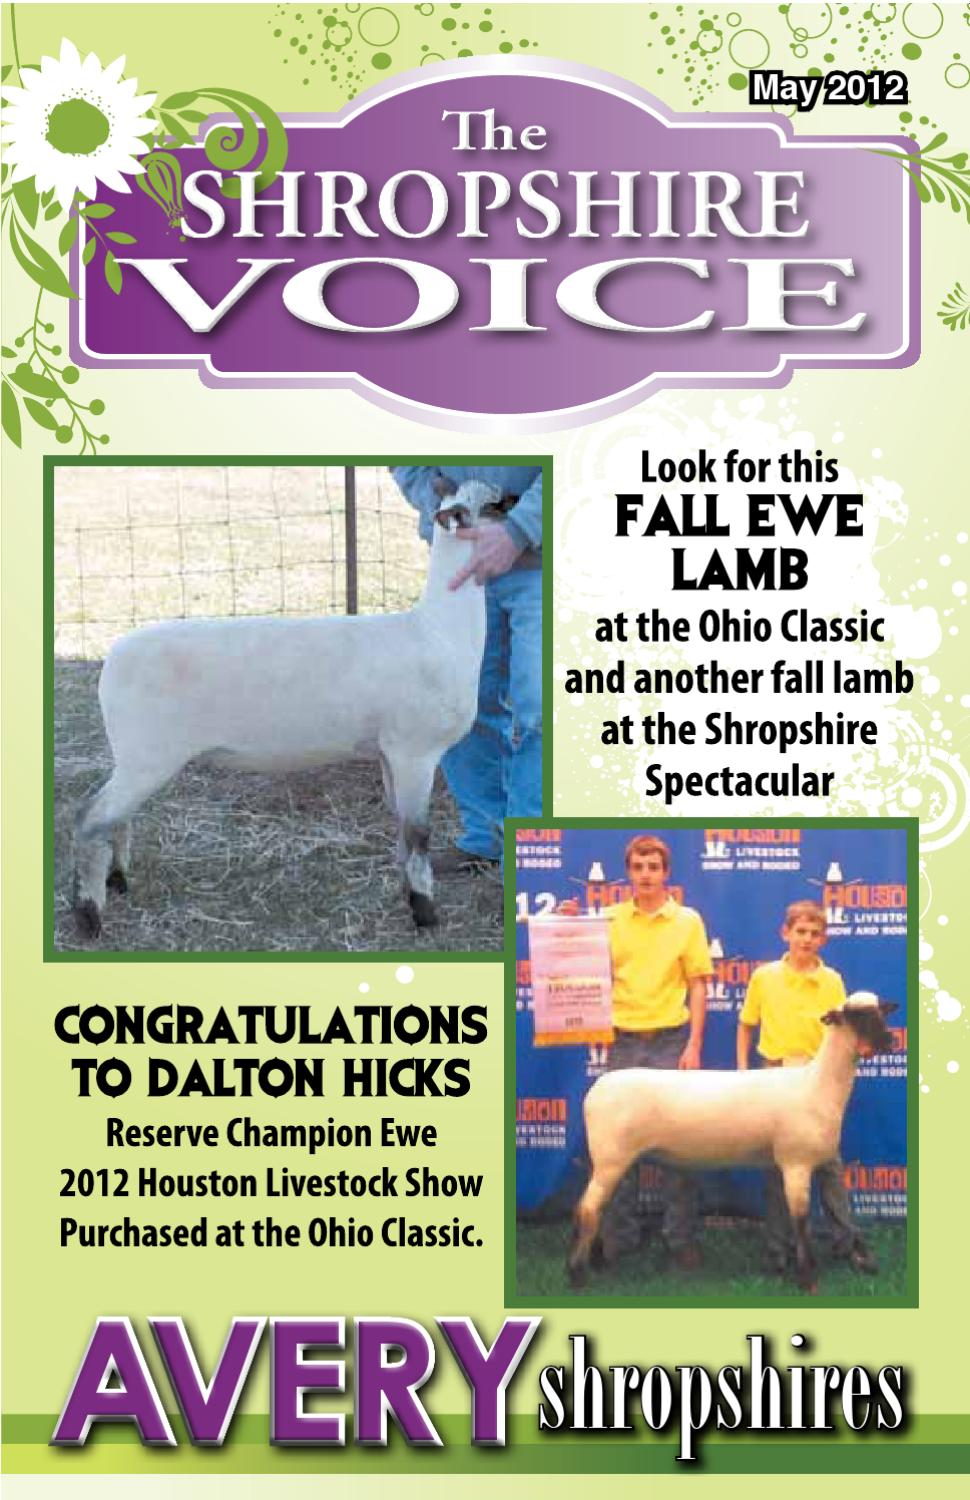 May 2012 Shropshire Voice by The Shropshire Voice - issuu